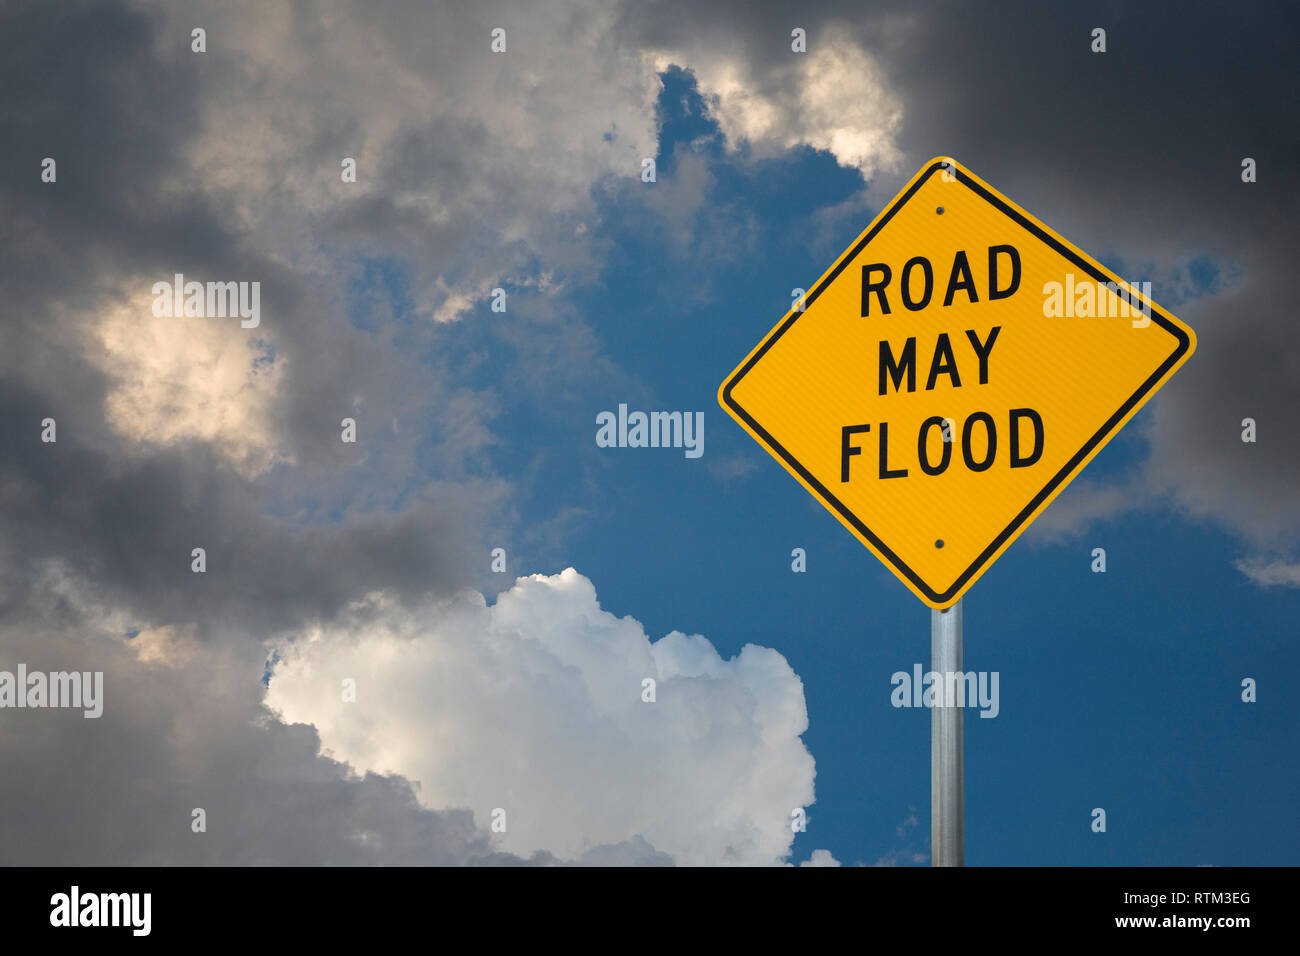 ROAD MAY FLOOD - Stock Image